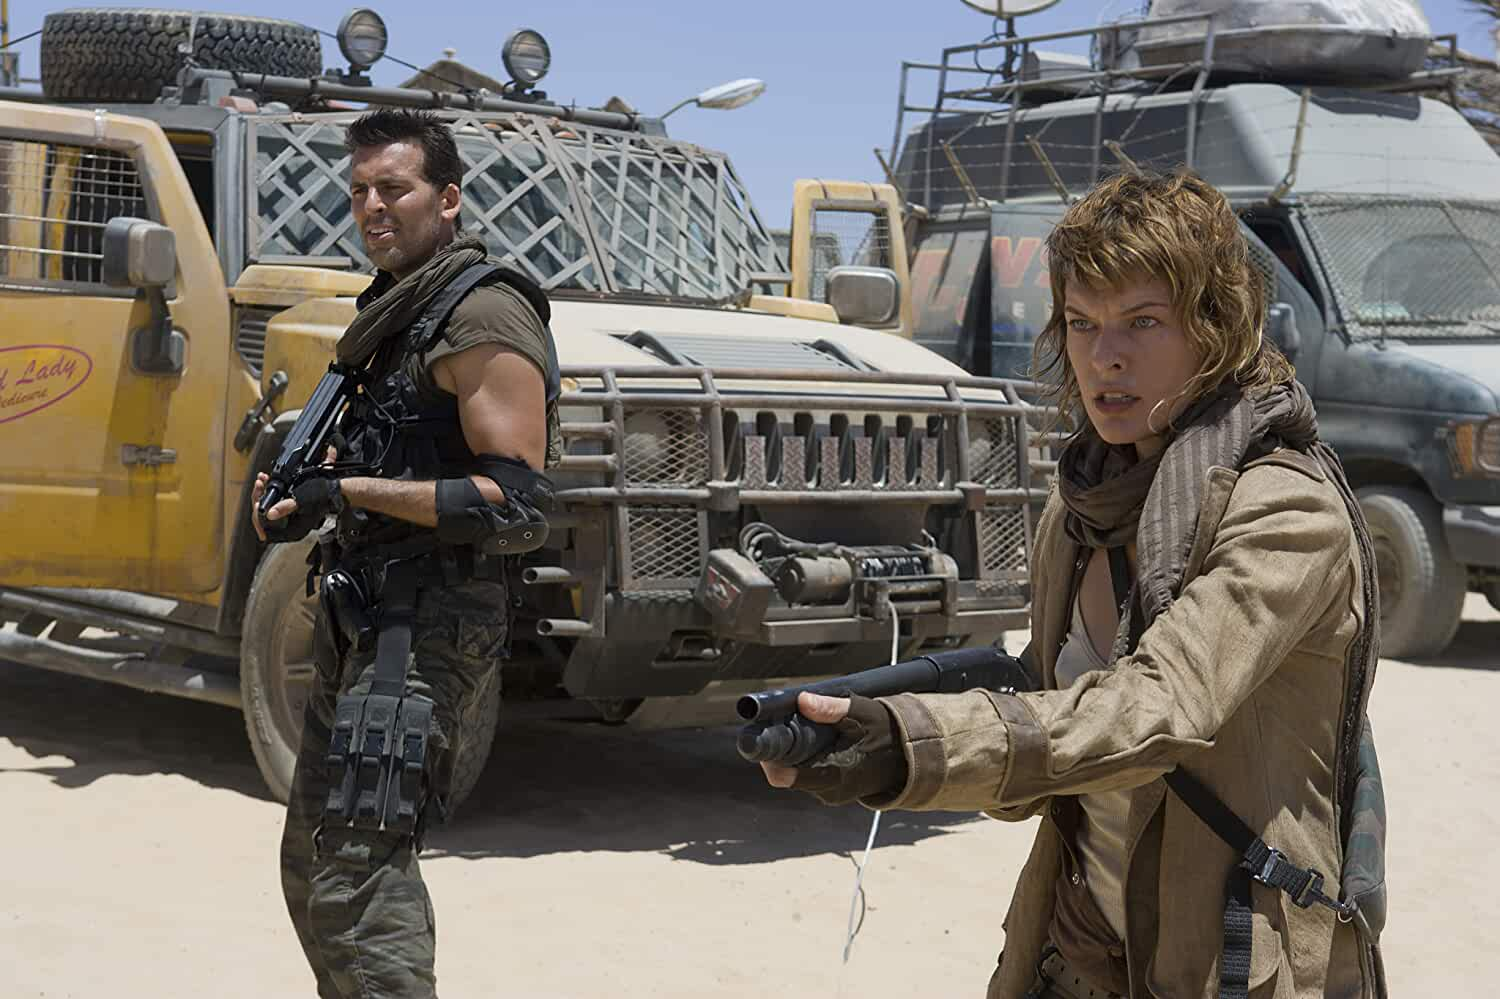 Milla Jovovich and Oded Fehr in Resident Evil: Extinction (2007)